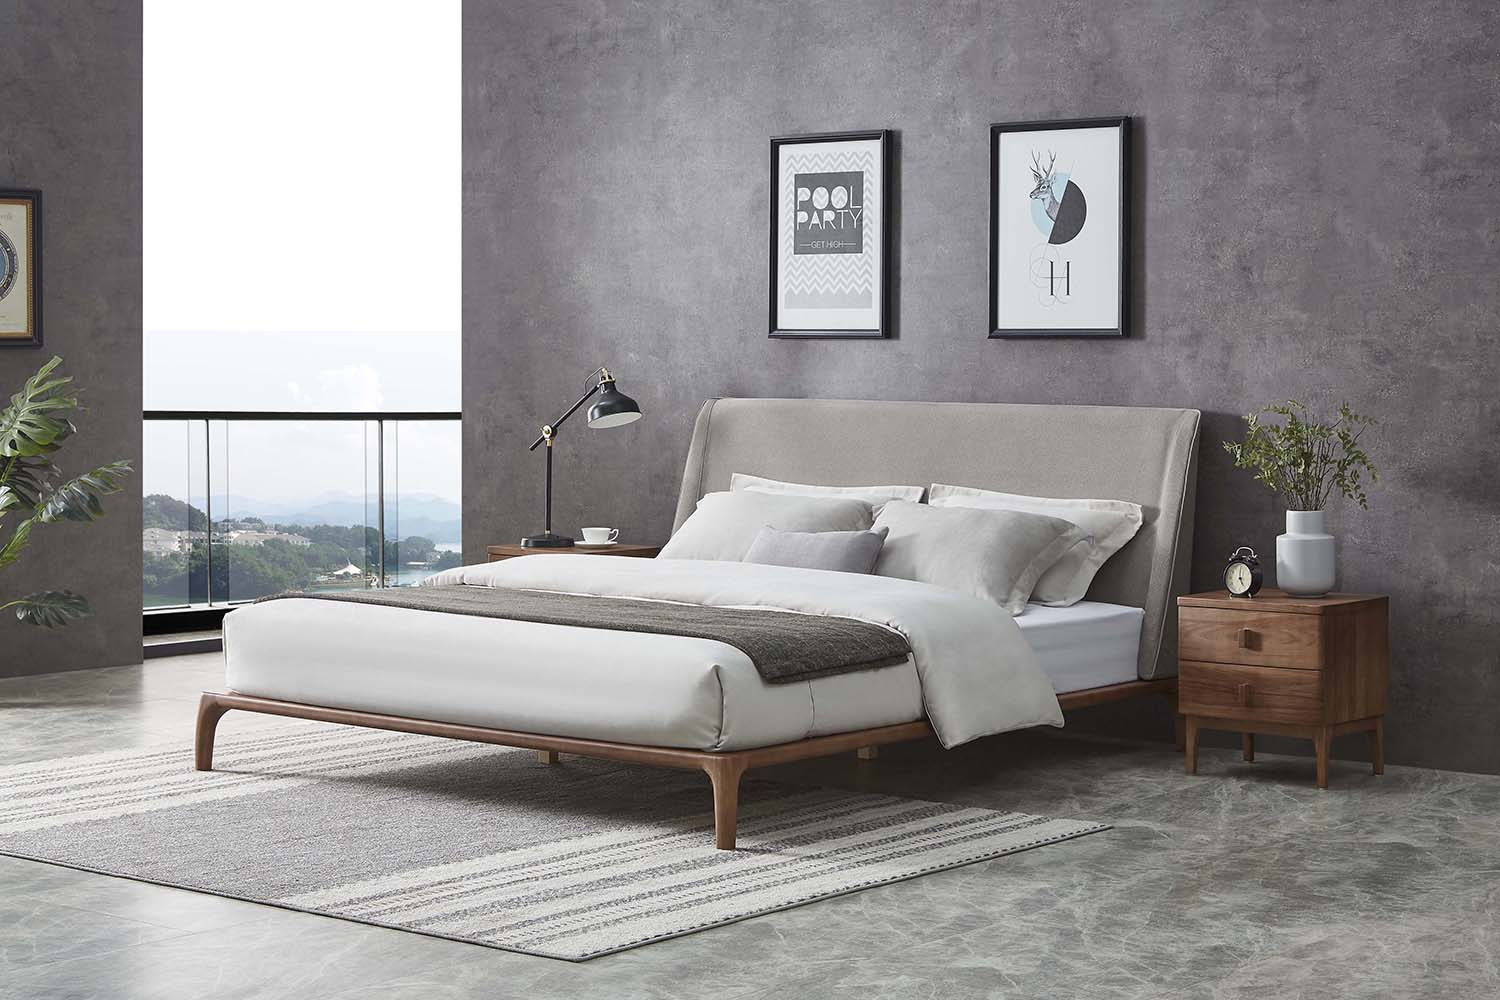 A slim outline is the hallmark of the Tyme bed.